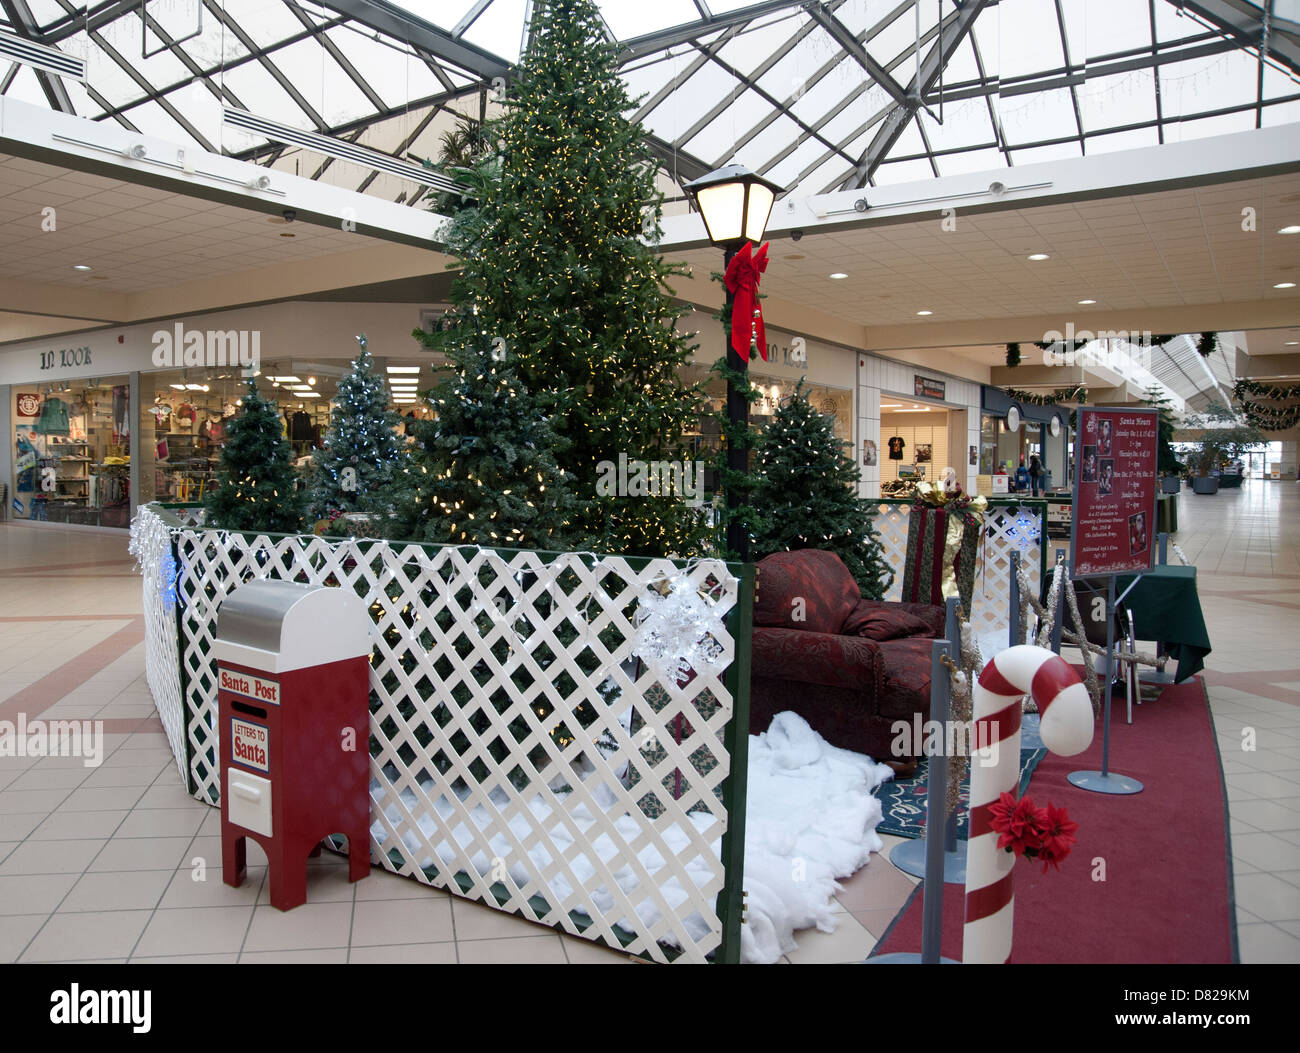 A shopping mall indoors decorated for Christmas, rural Saskatchewan, Canada - Stock Image